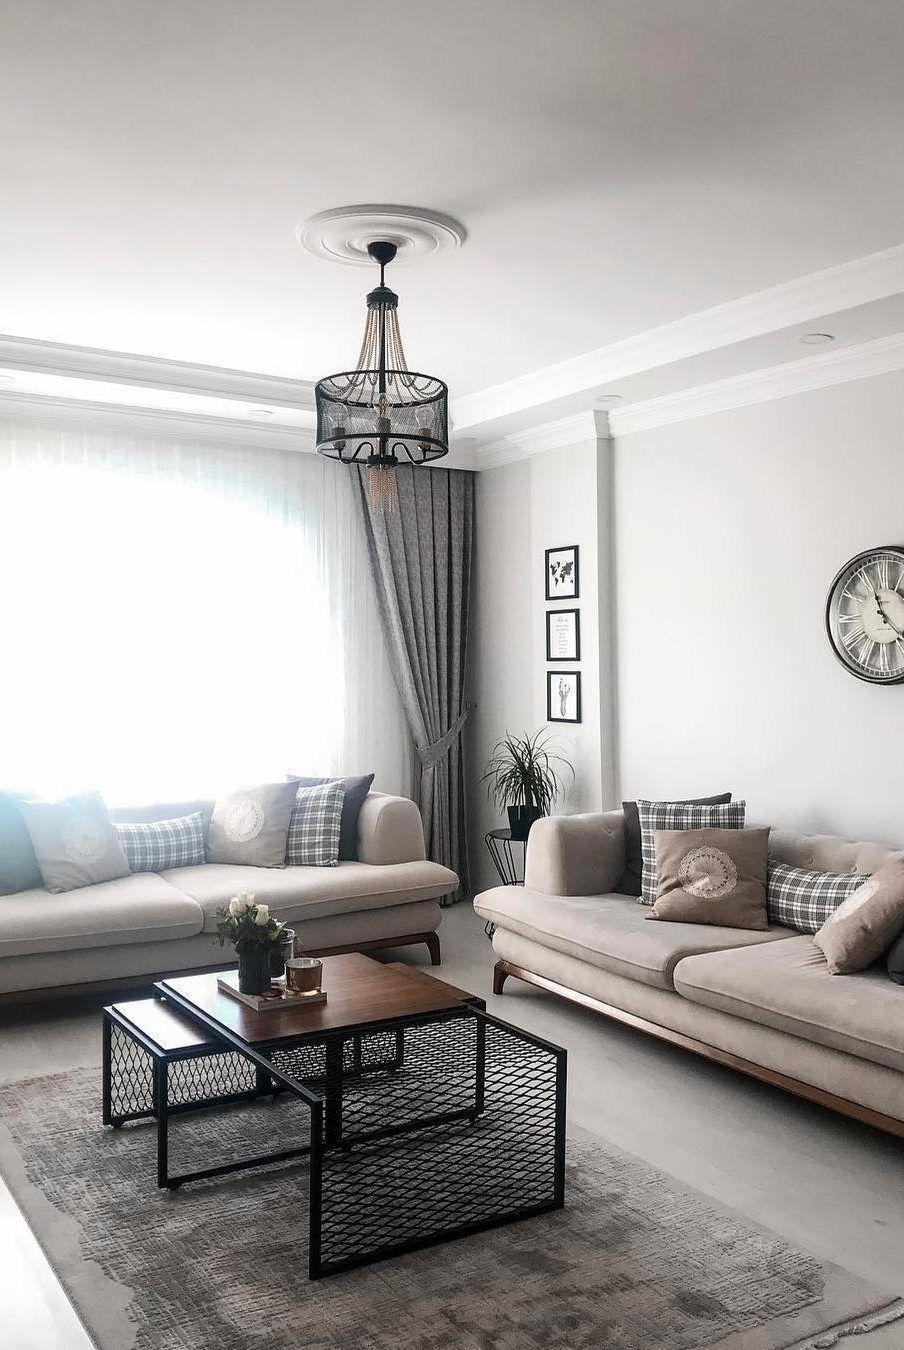 48 Most Popular Living Room Design Ideas For 2019 Images Page 39